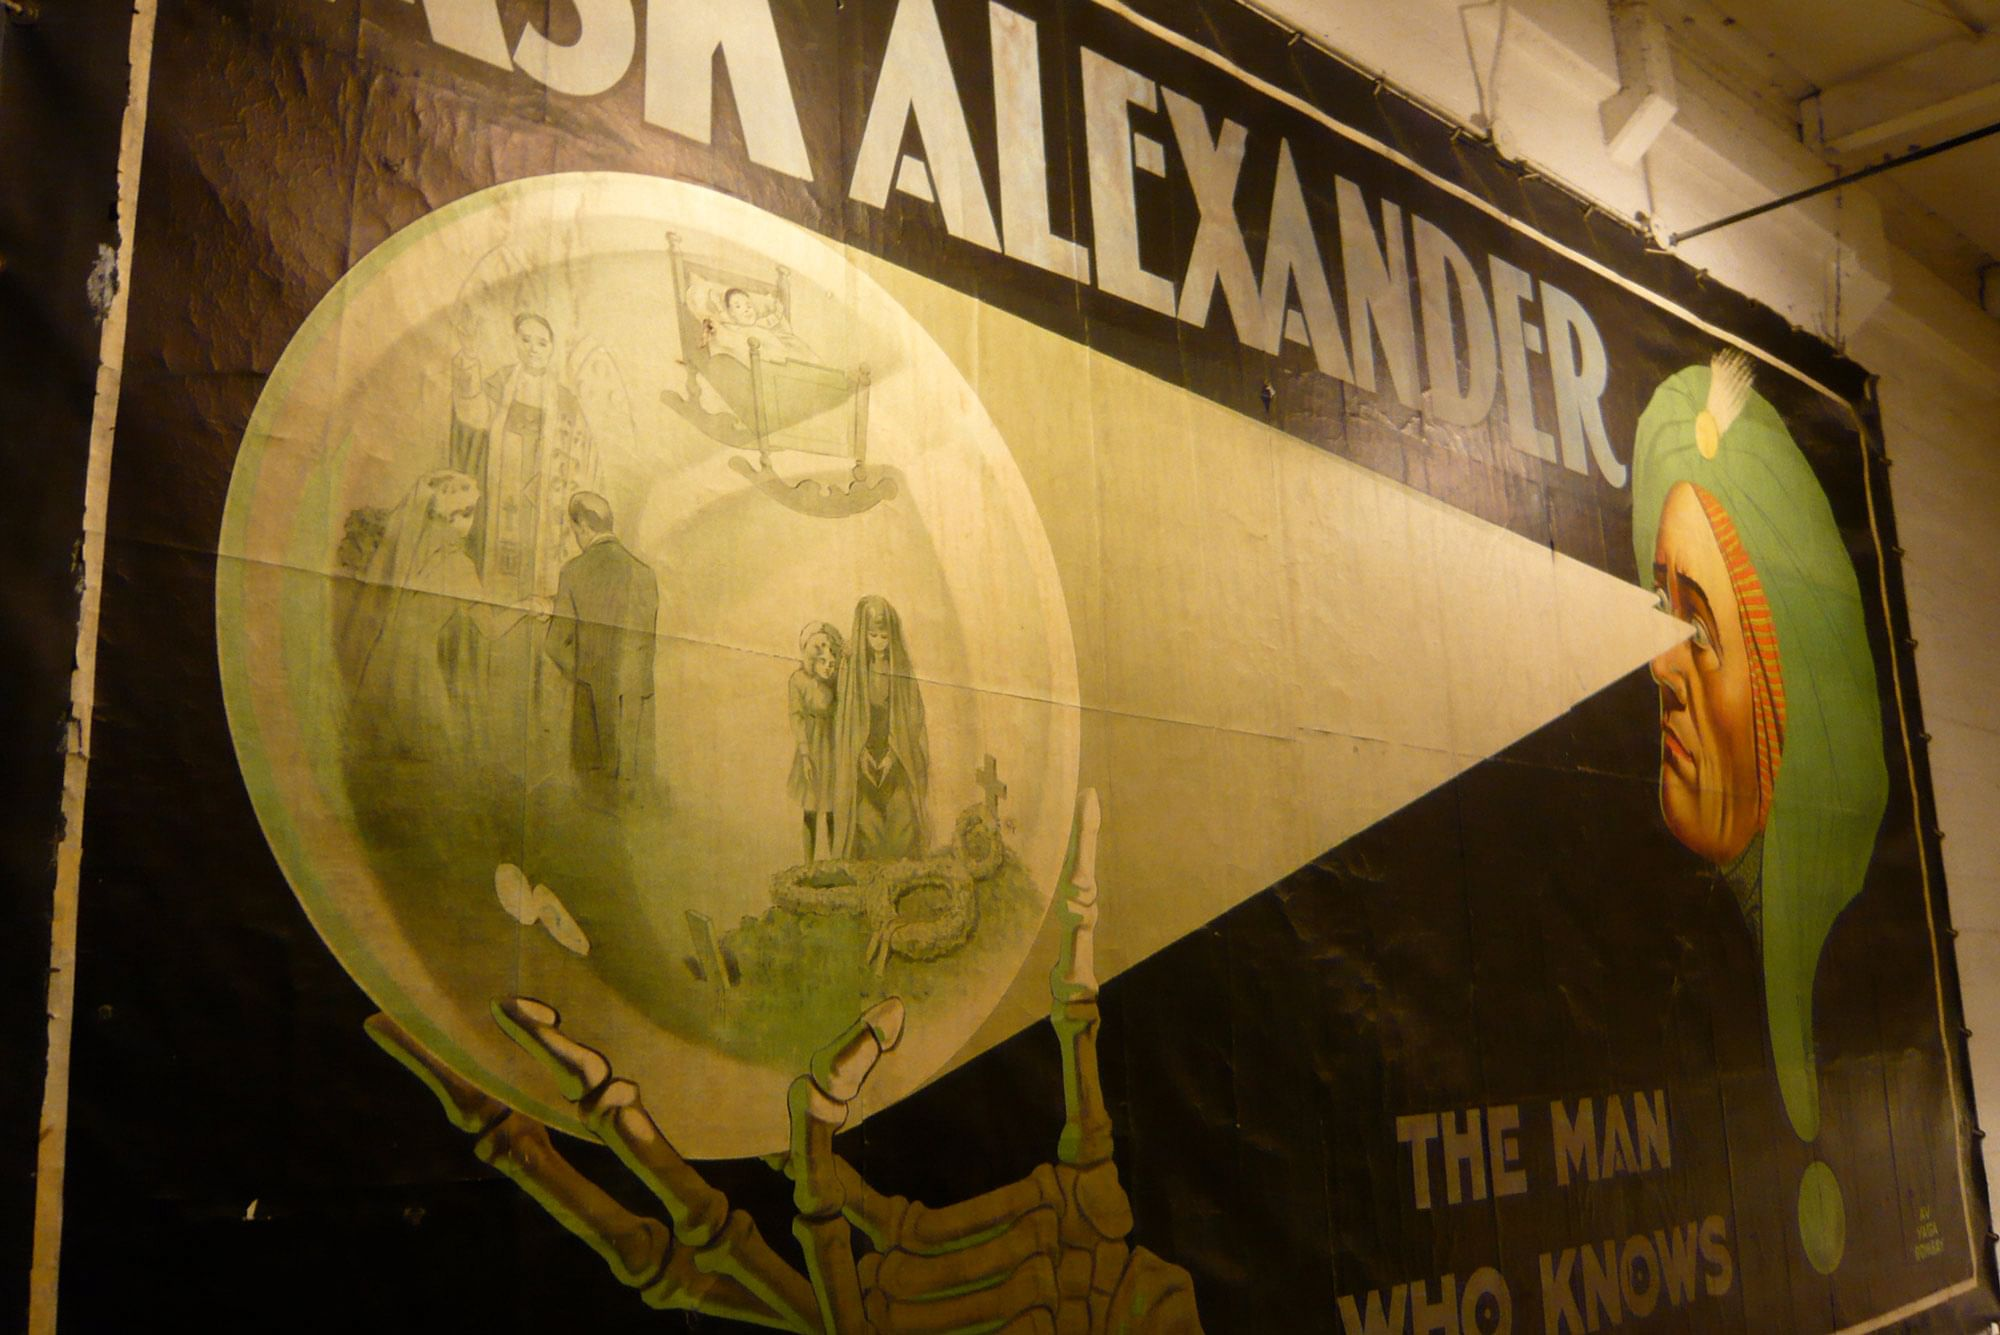 Alexander - The Man Who Knows